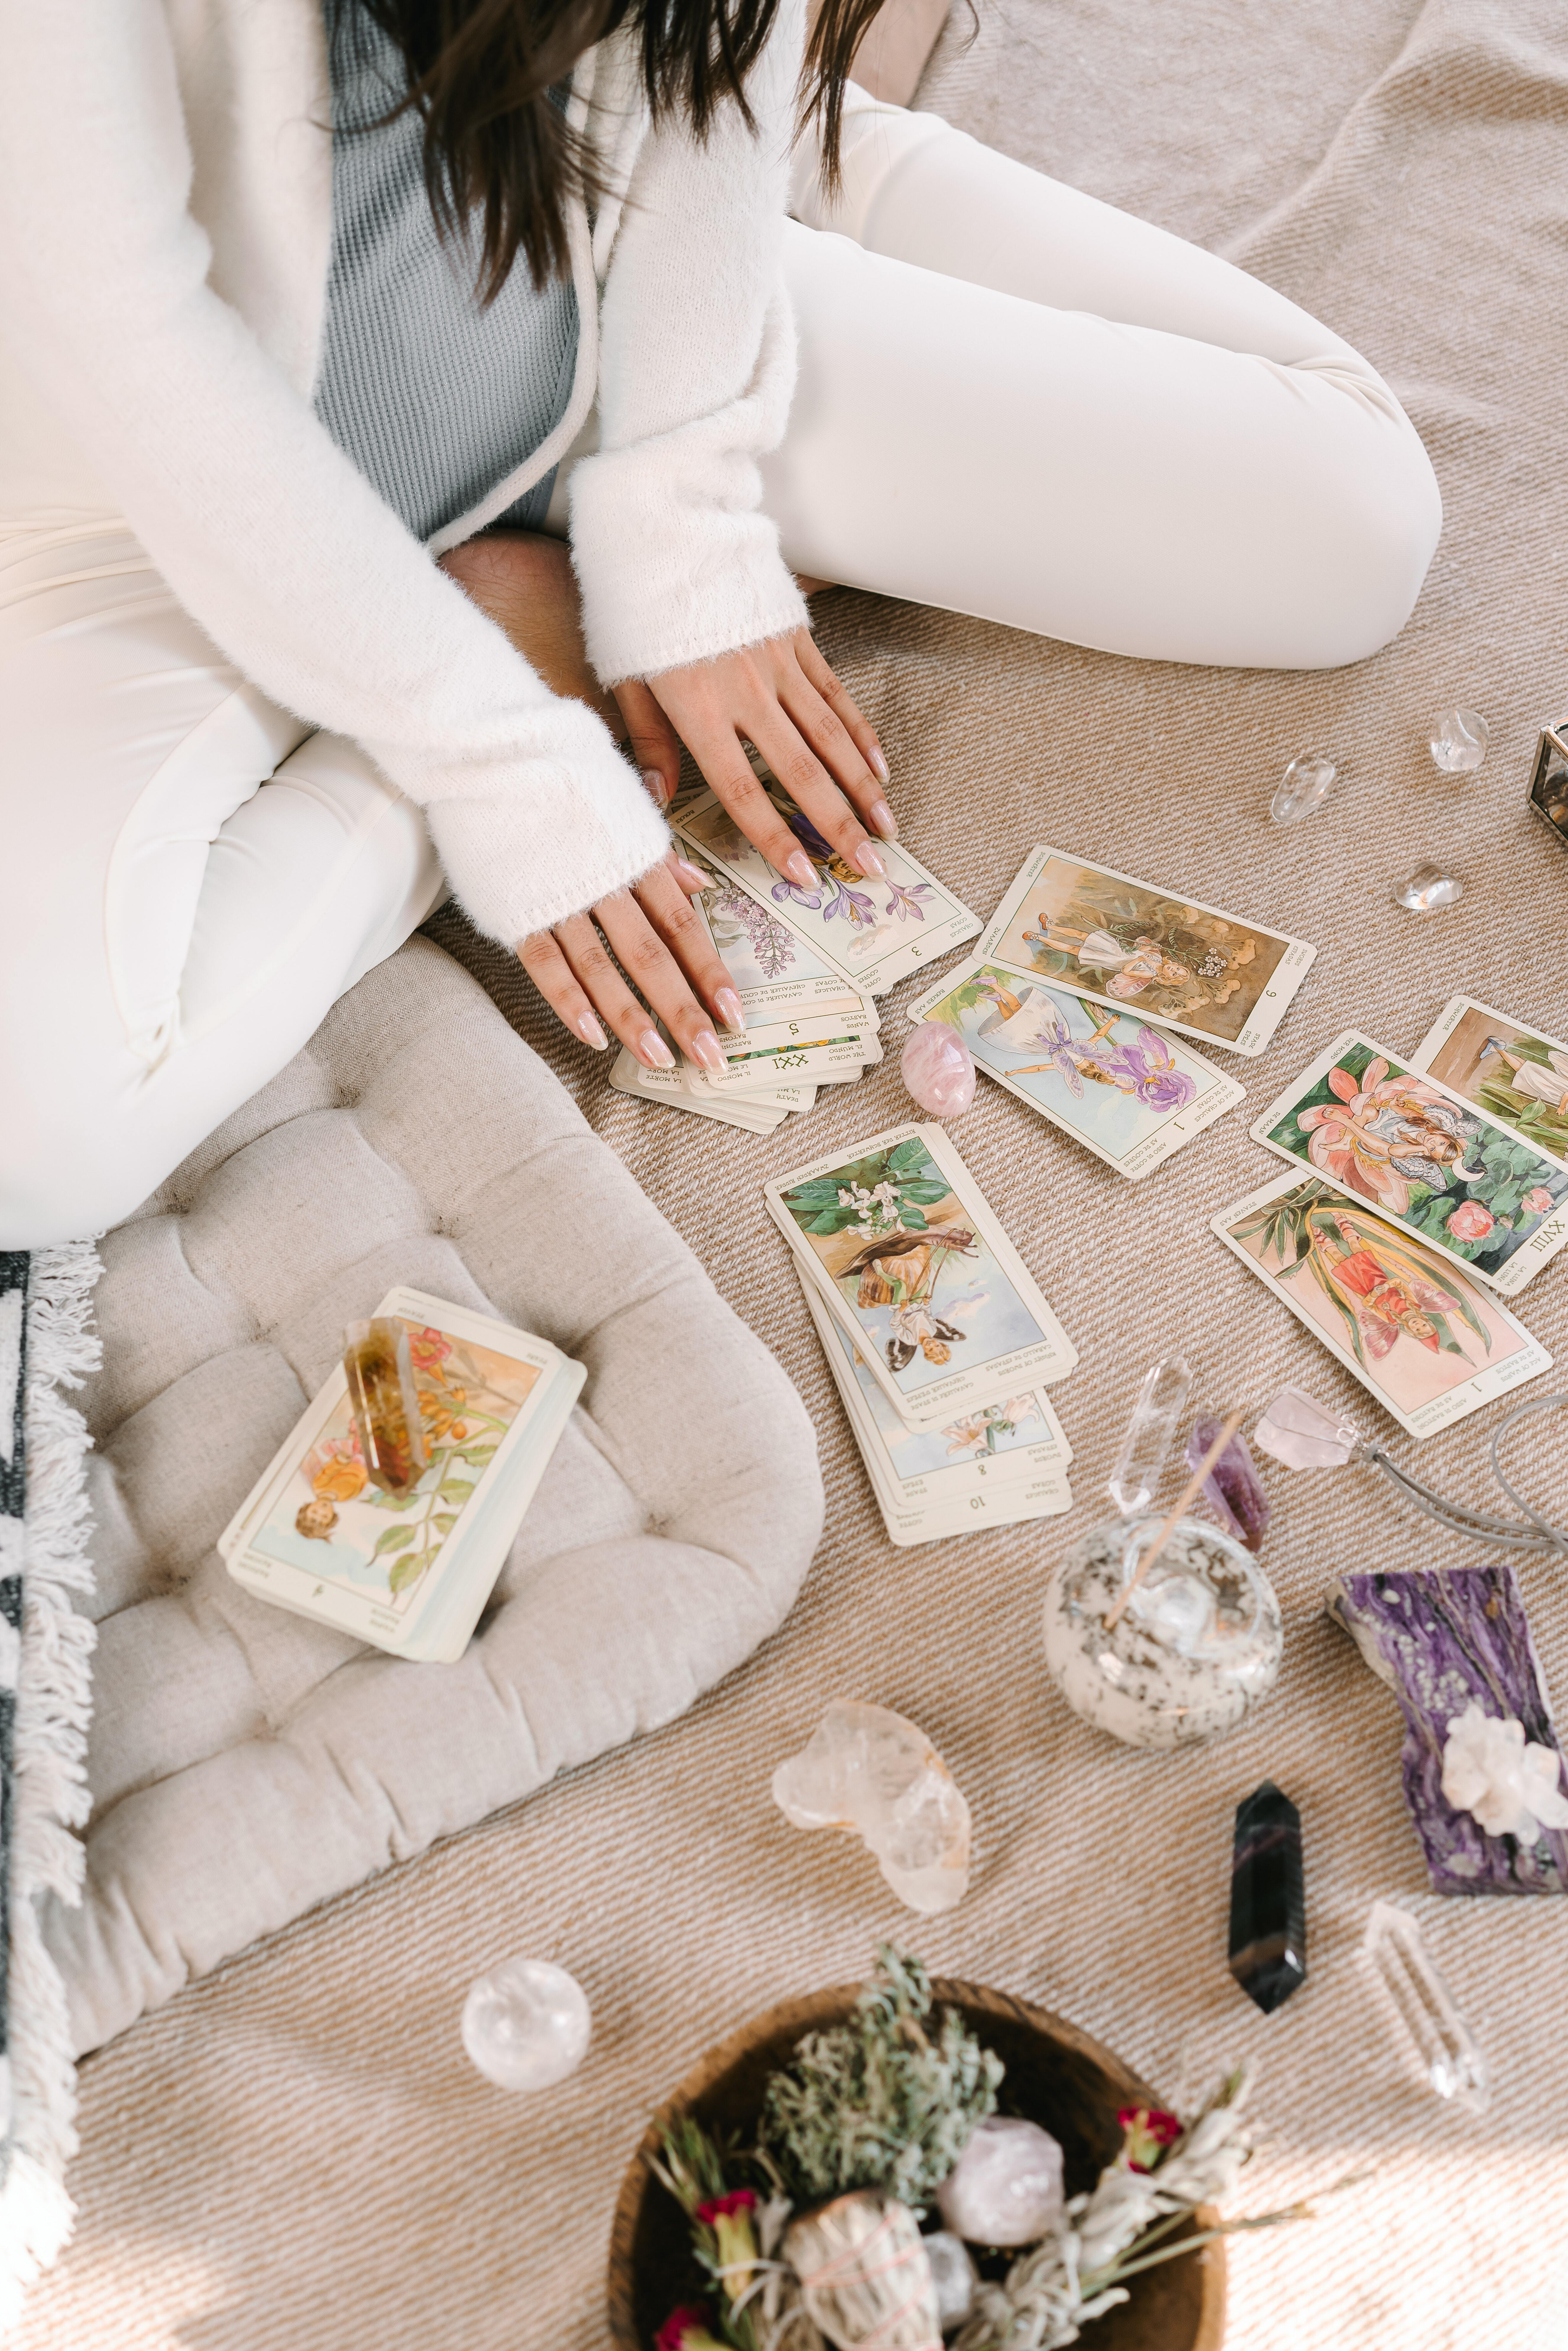 Crystal healing and Cards layed out on the floor